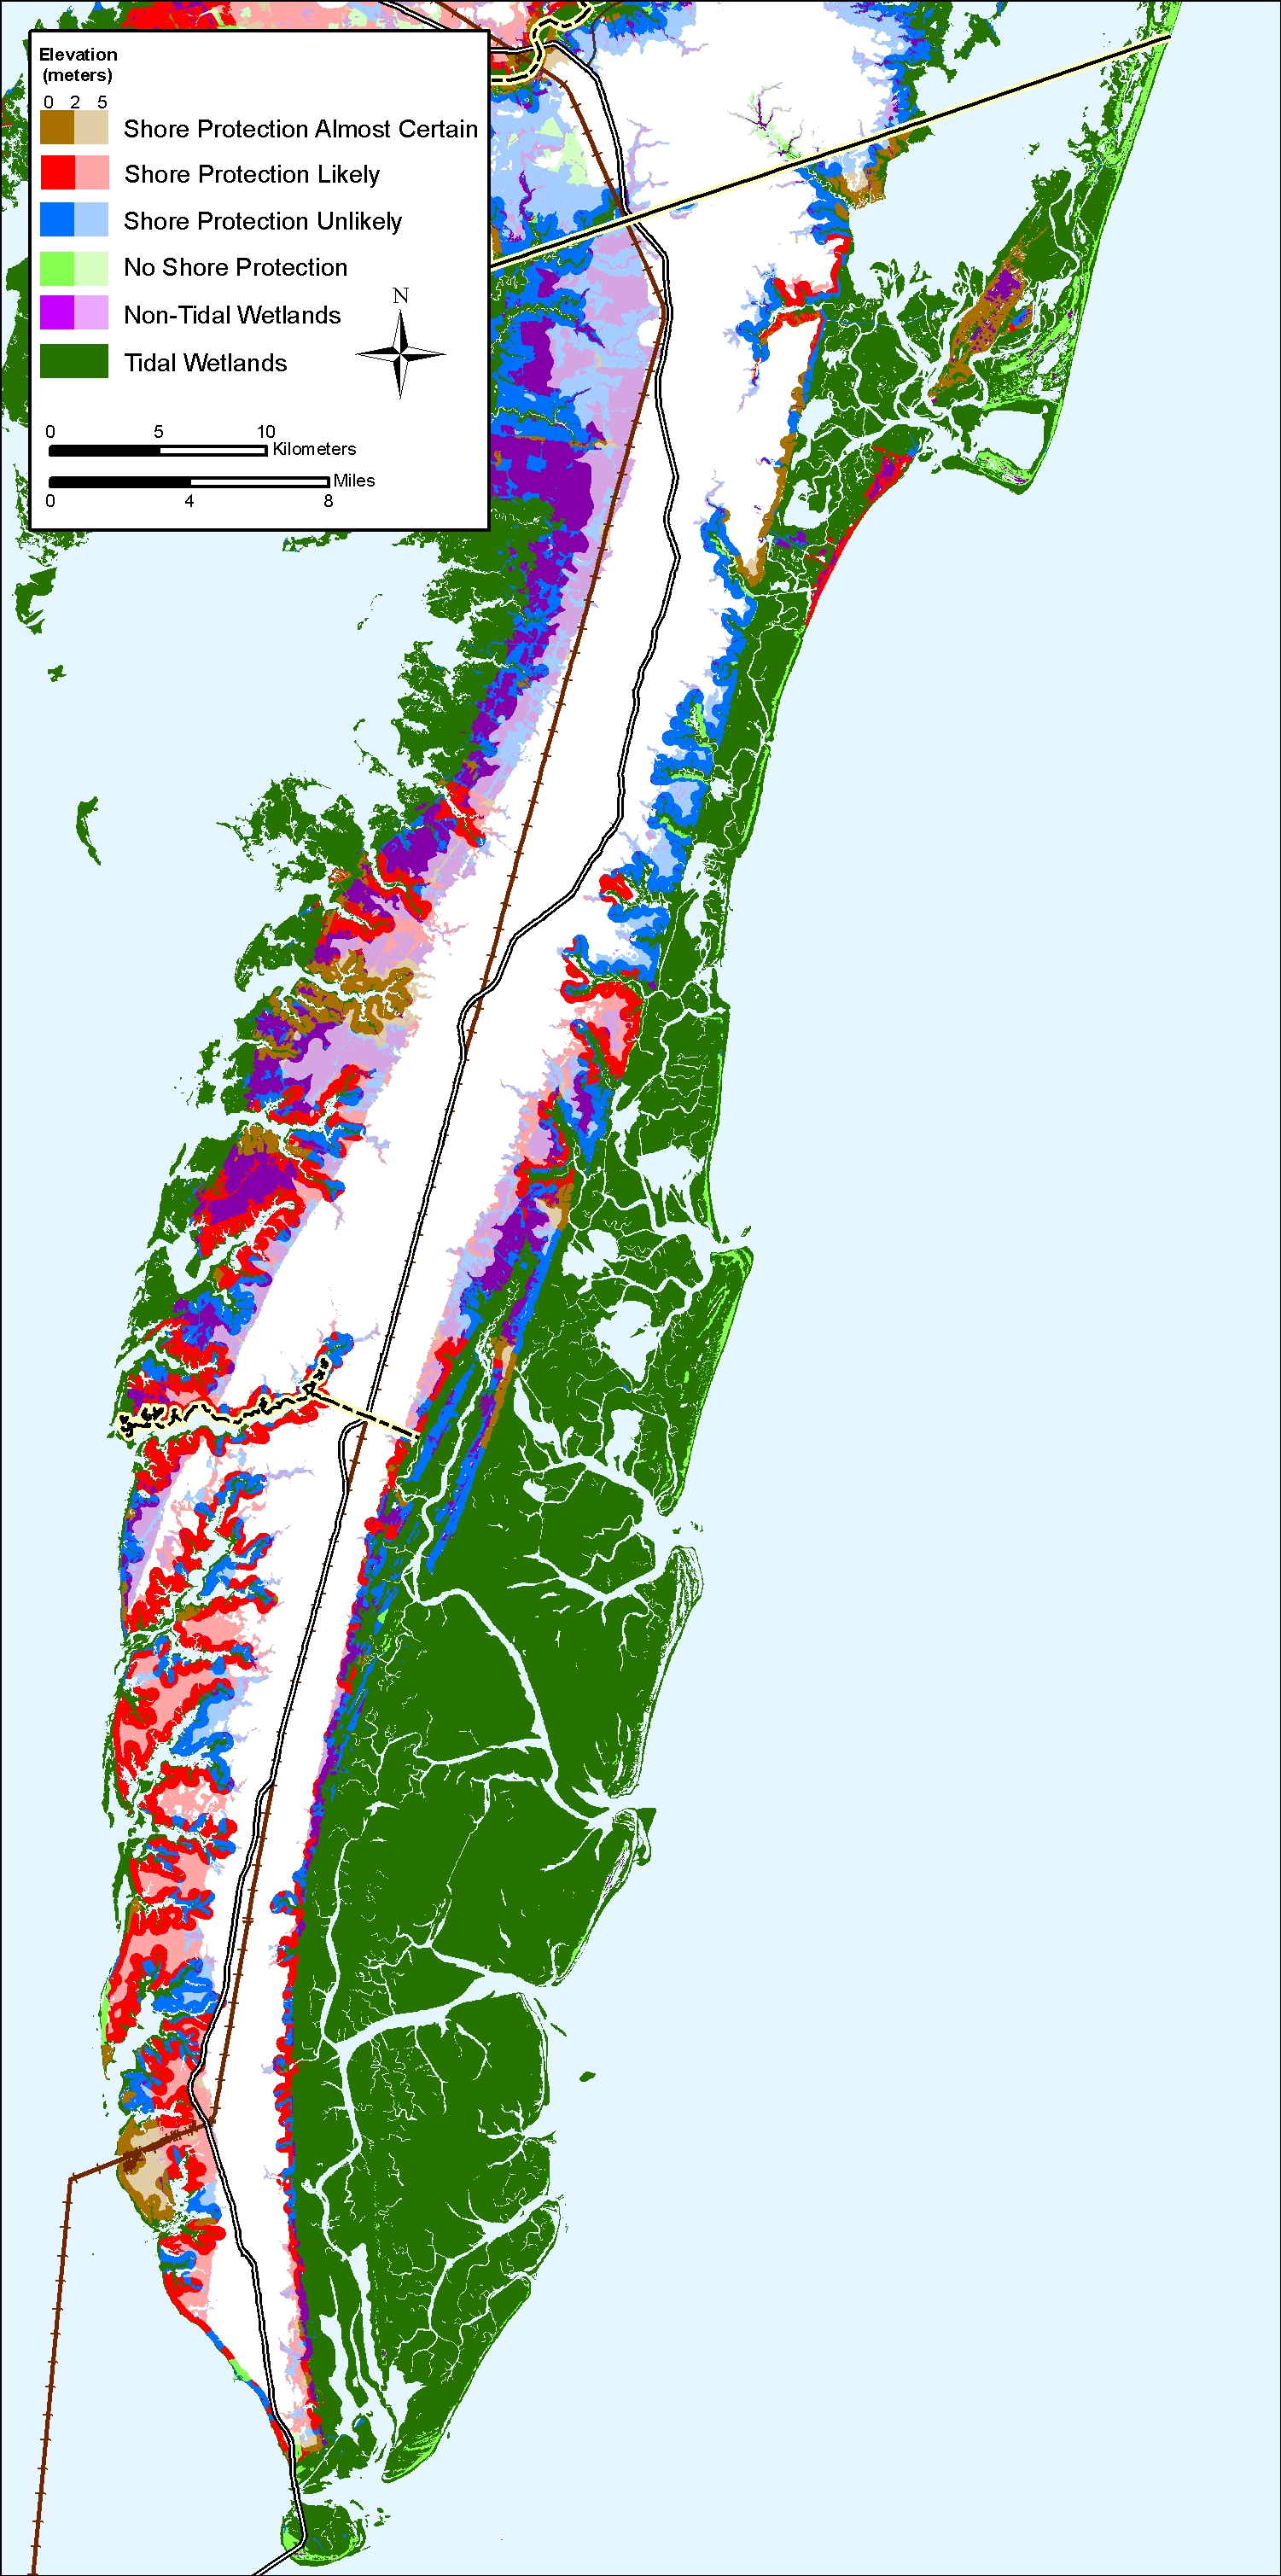 Sea Level Rise Planning Maps Likelihood Of Shore Protection In - Elevation above sea level by zip code